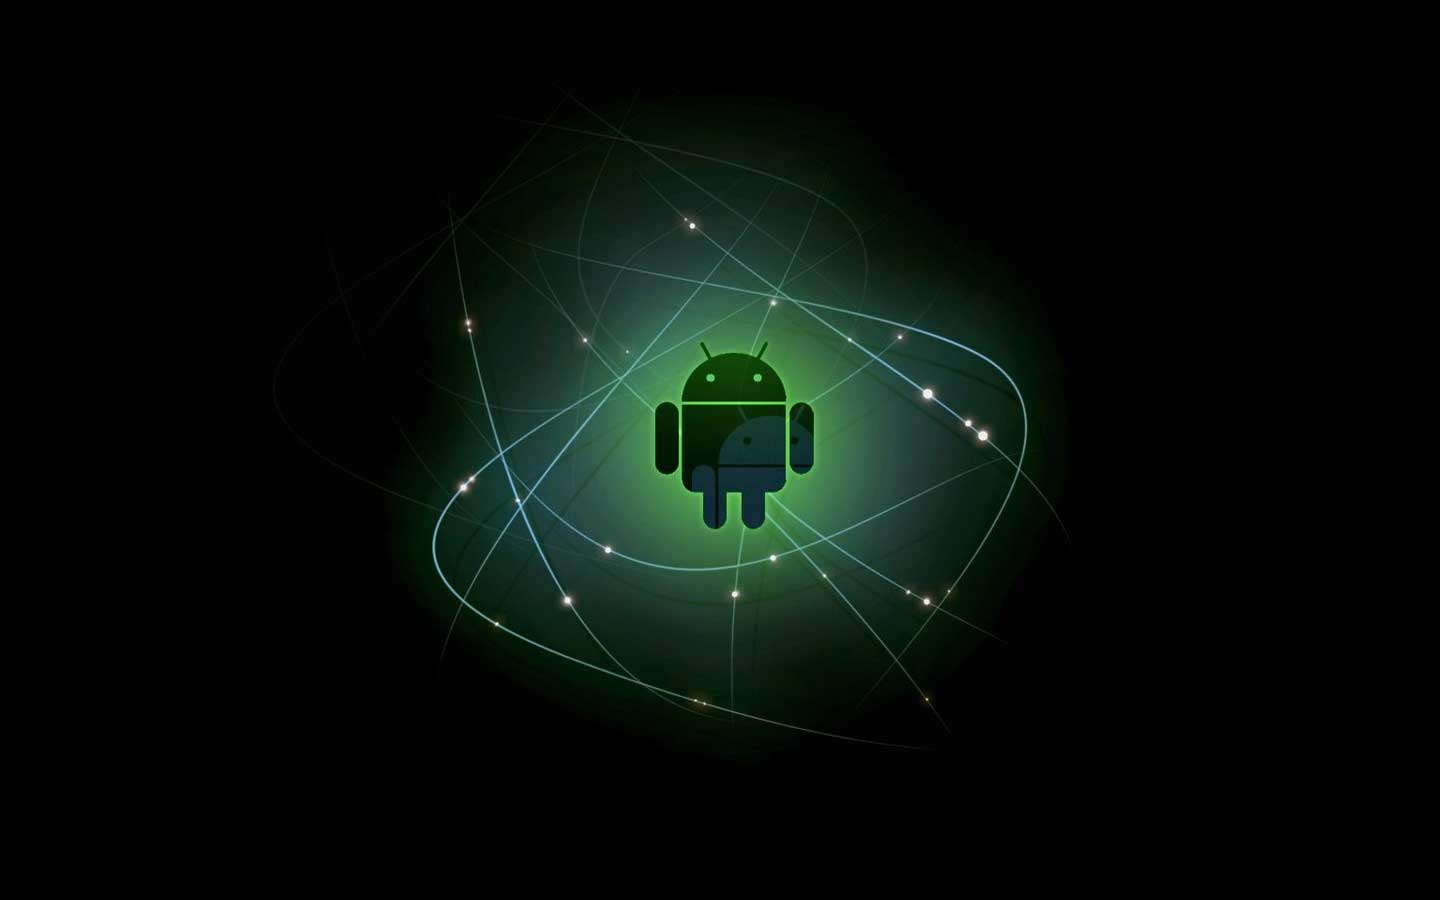 Hd wallpaper android - Best Android Jelly Bean Wallpaper For Android Wallpaper With 1440x900